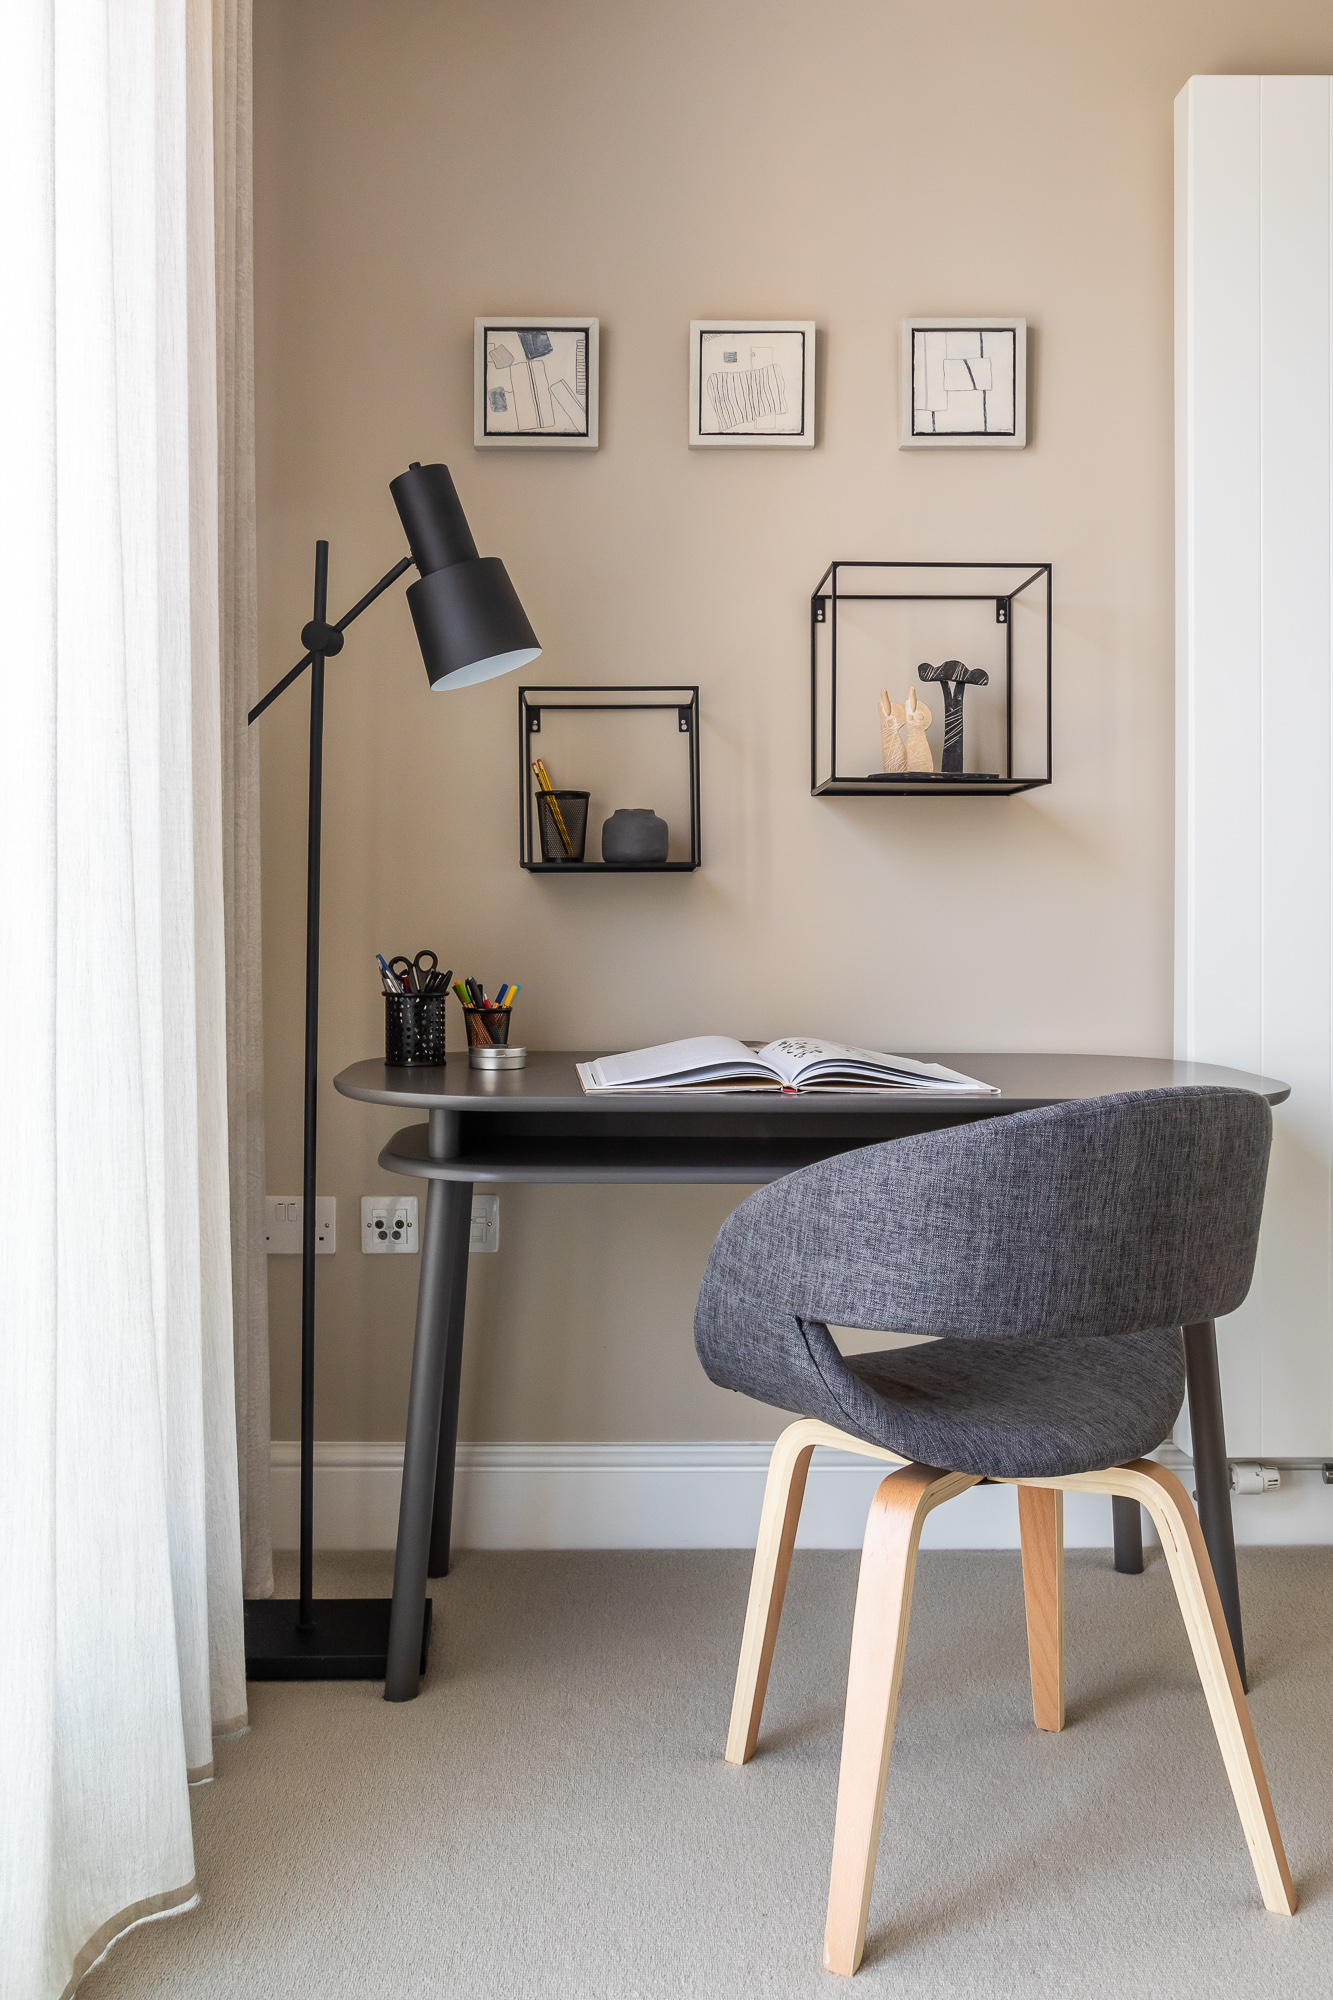 jonathan bond, floor lamp, writing desk & chair, mill road, cambridge